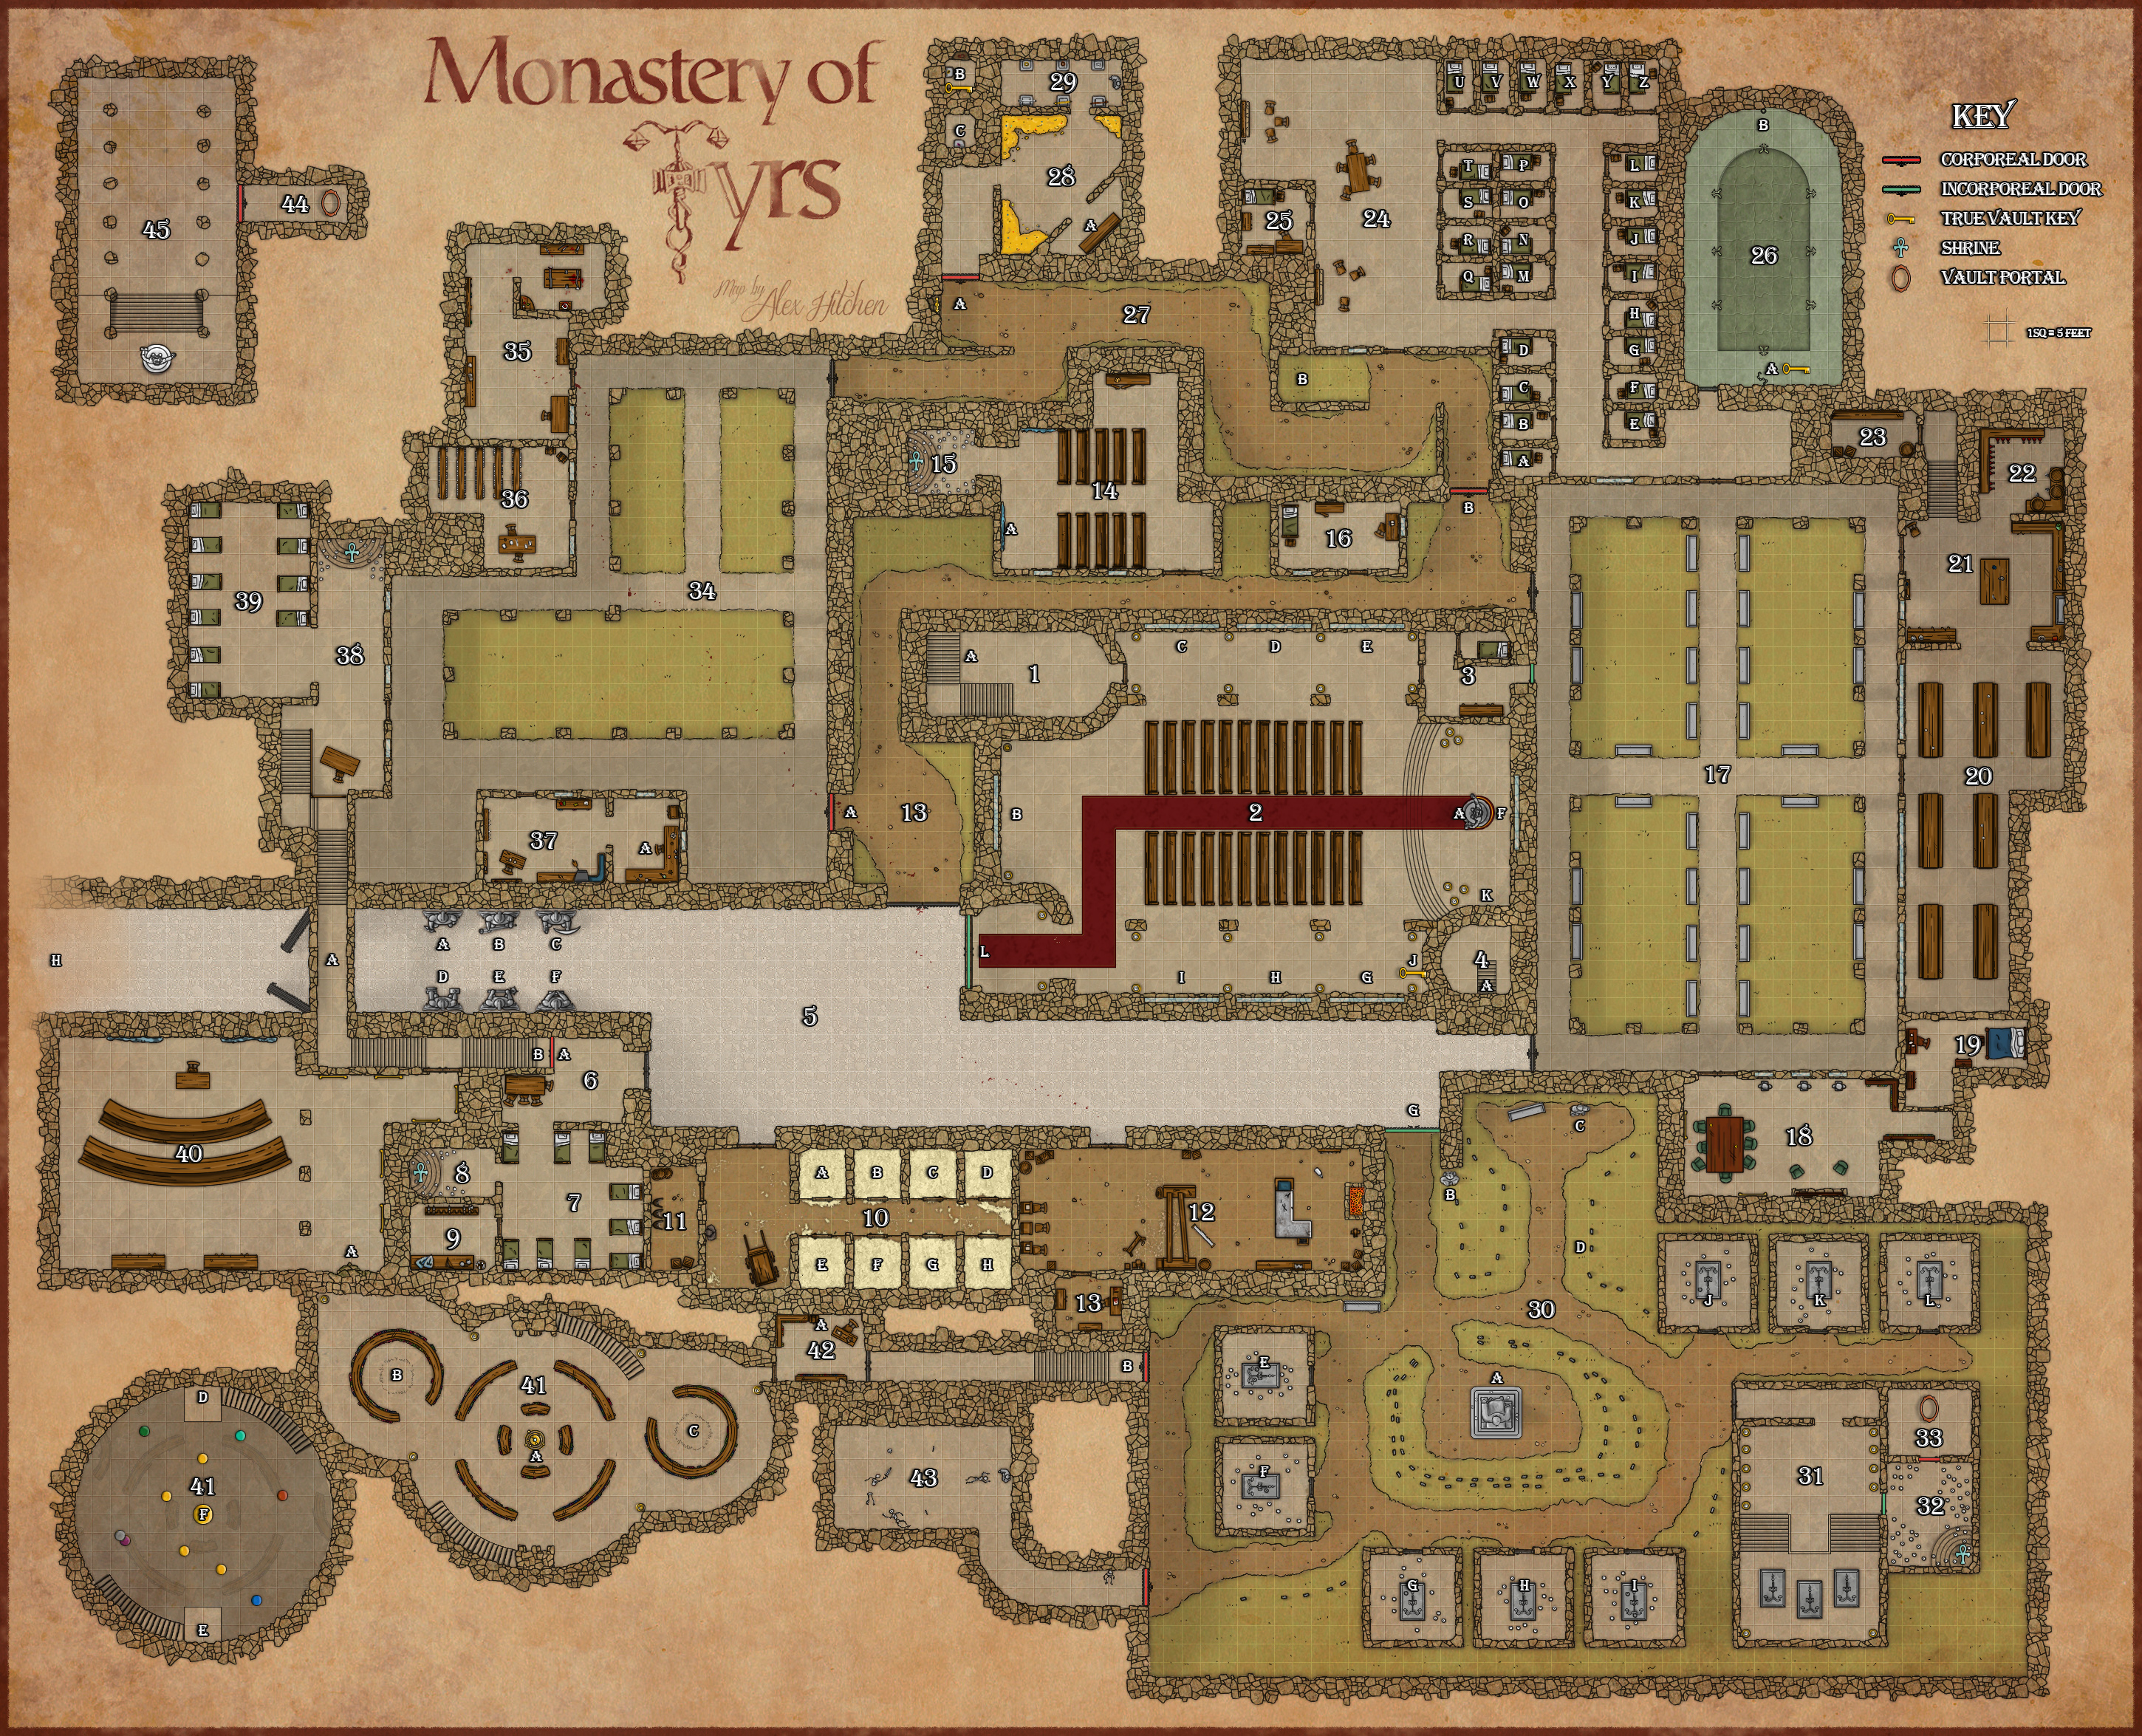 Monastery of Tyrs - Final GM Map